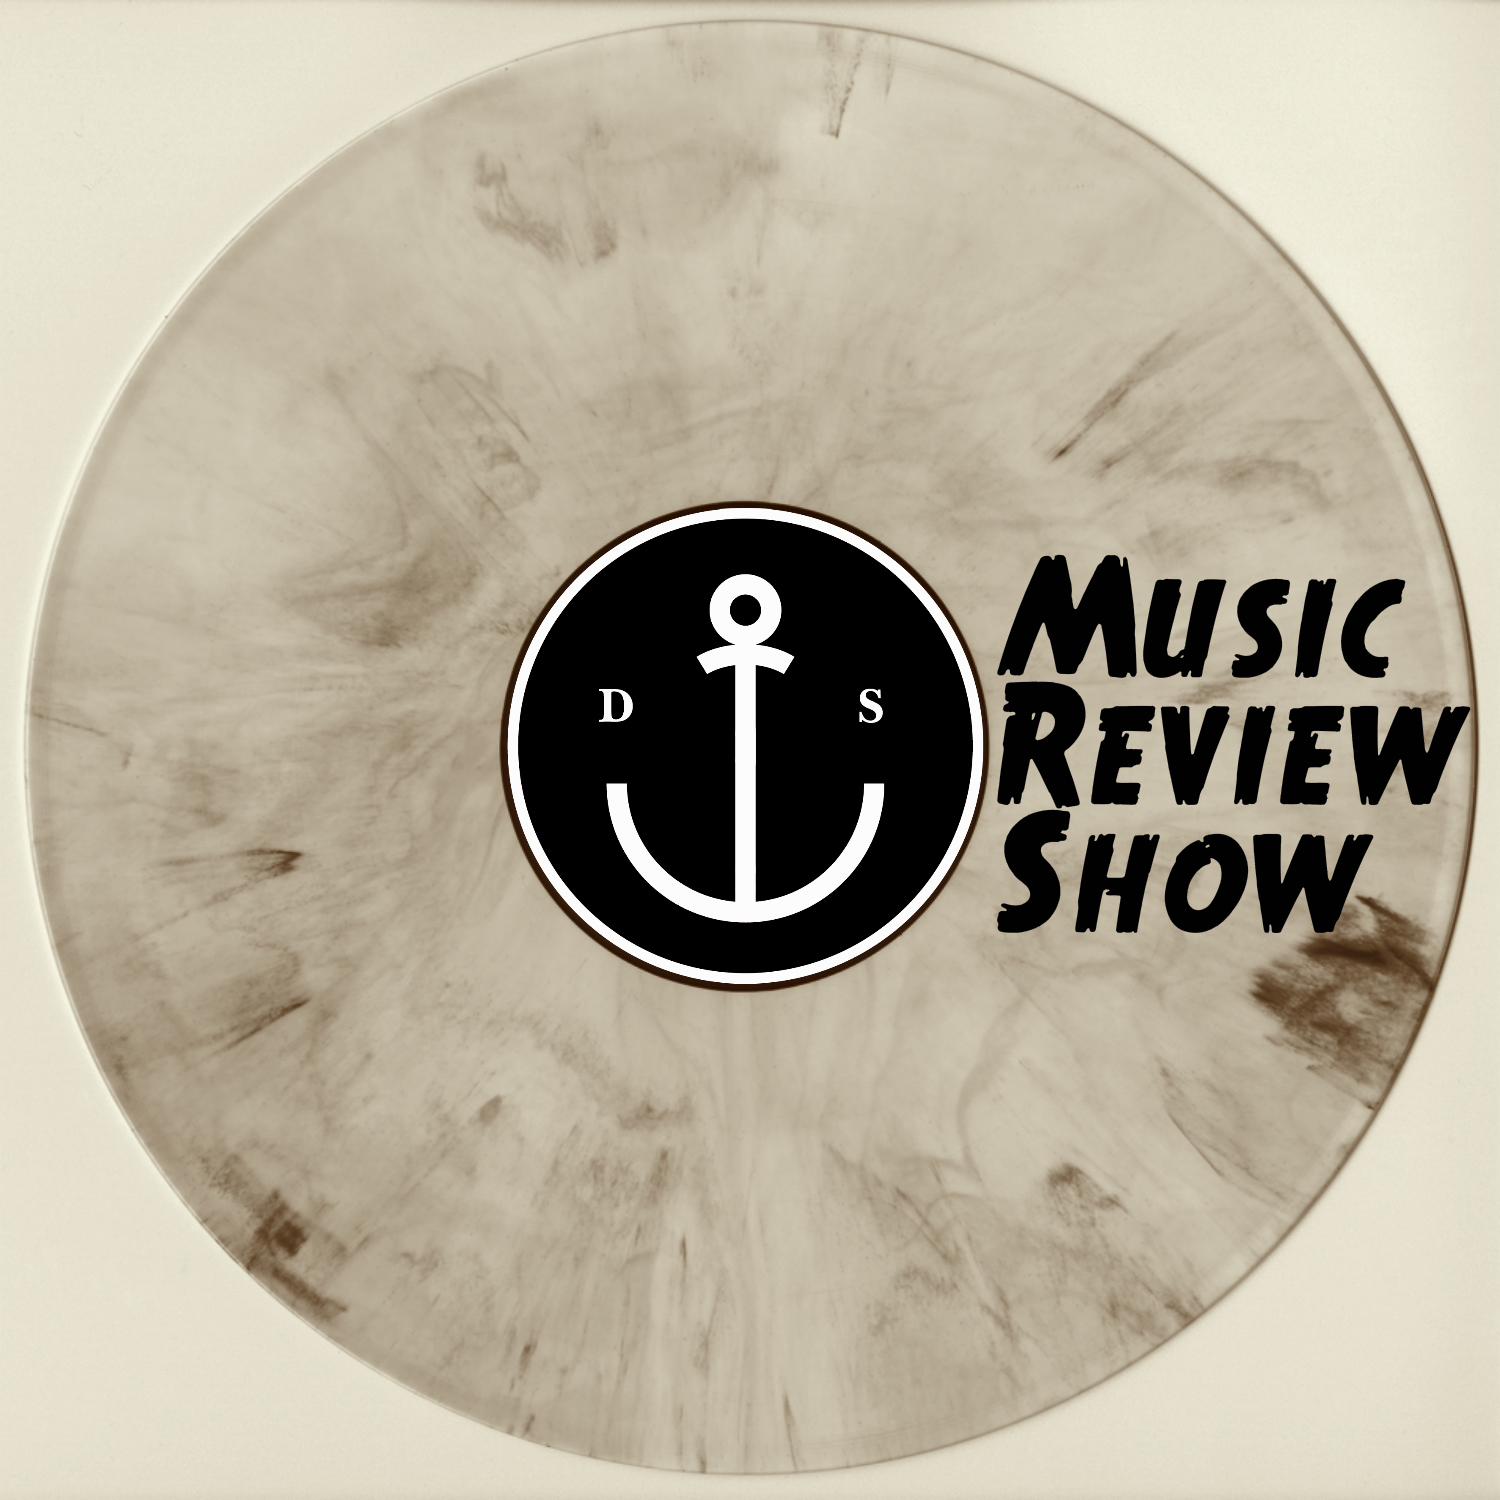 Music Review Show logo